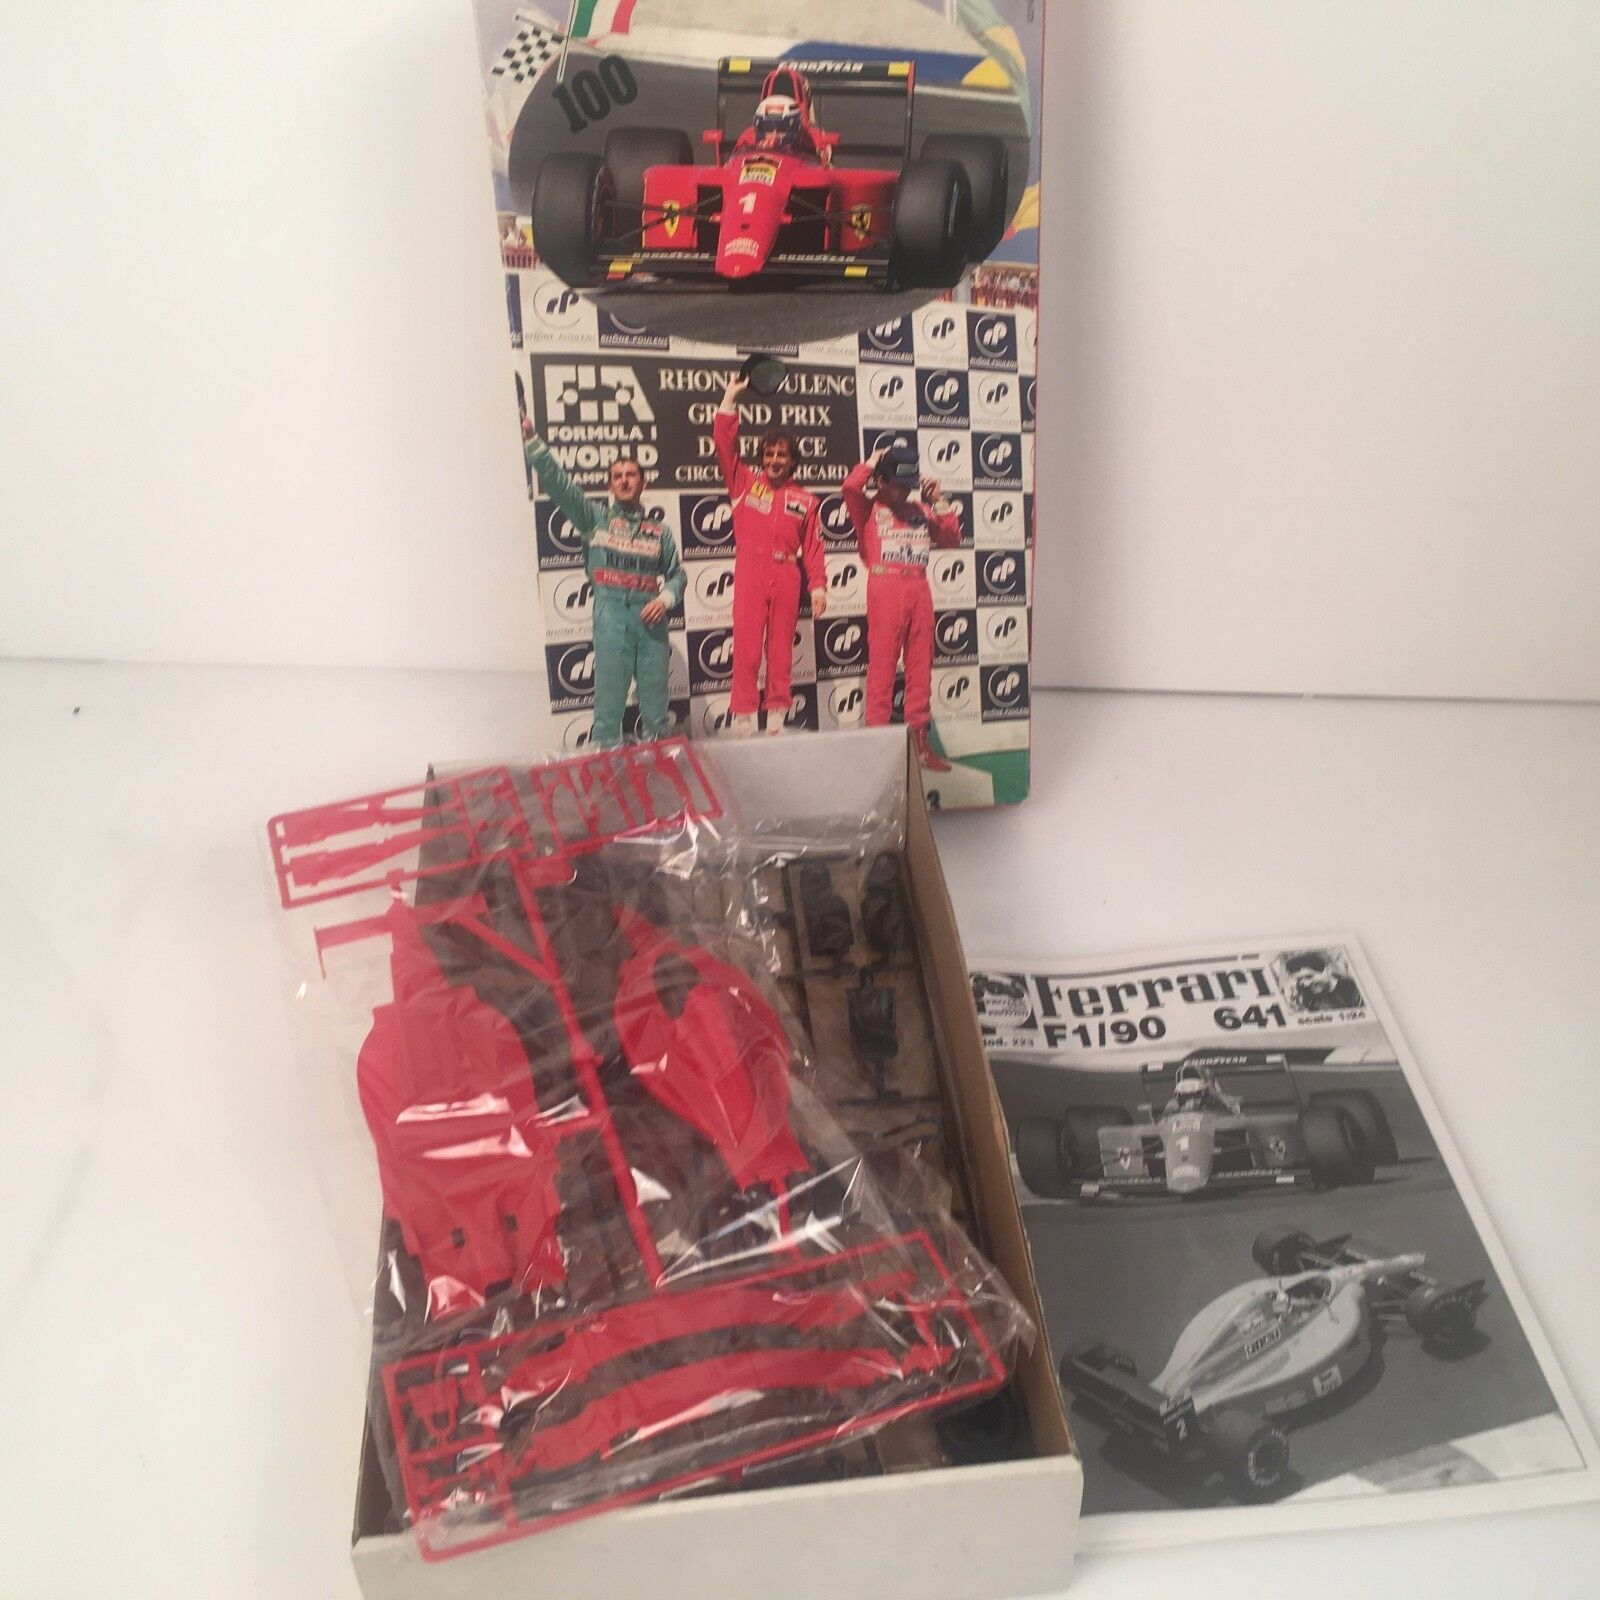 Ferrari F1 90 641 Model KIT (Projoar) scala 1 24